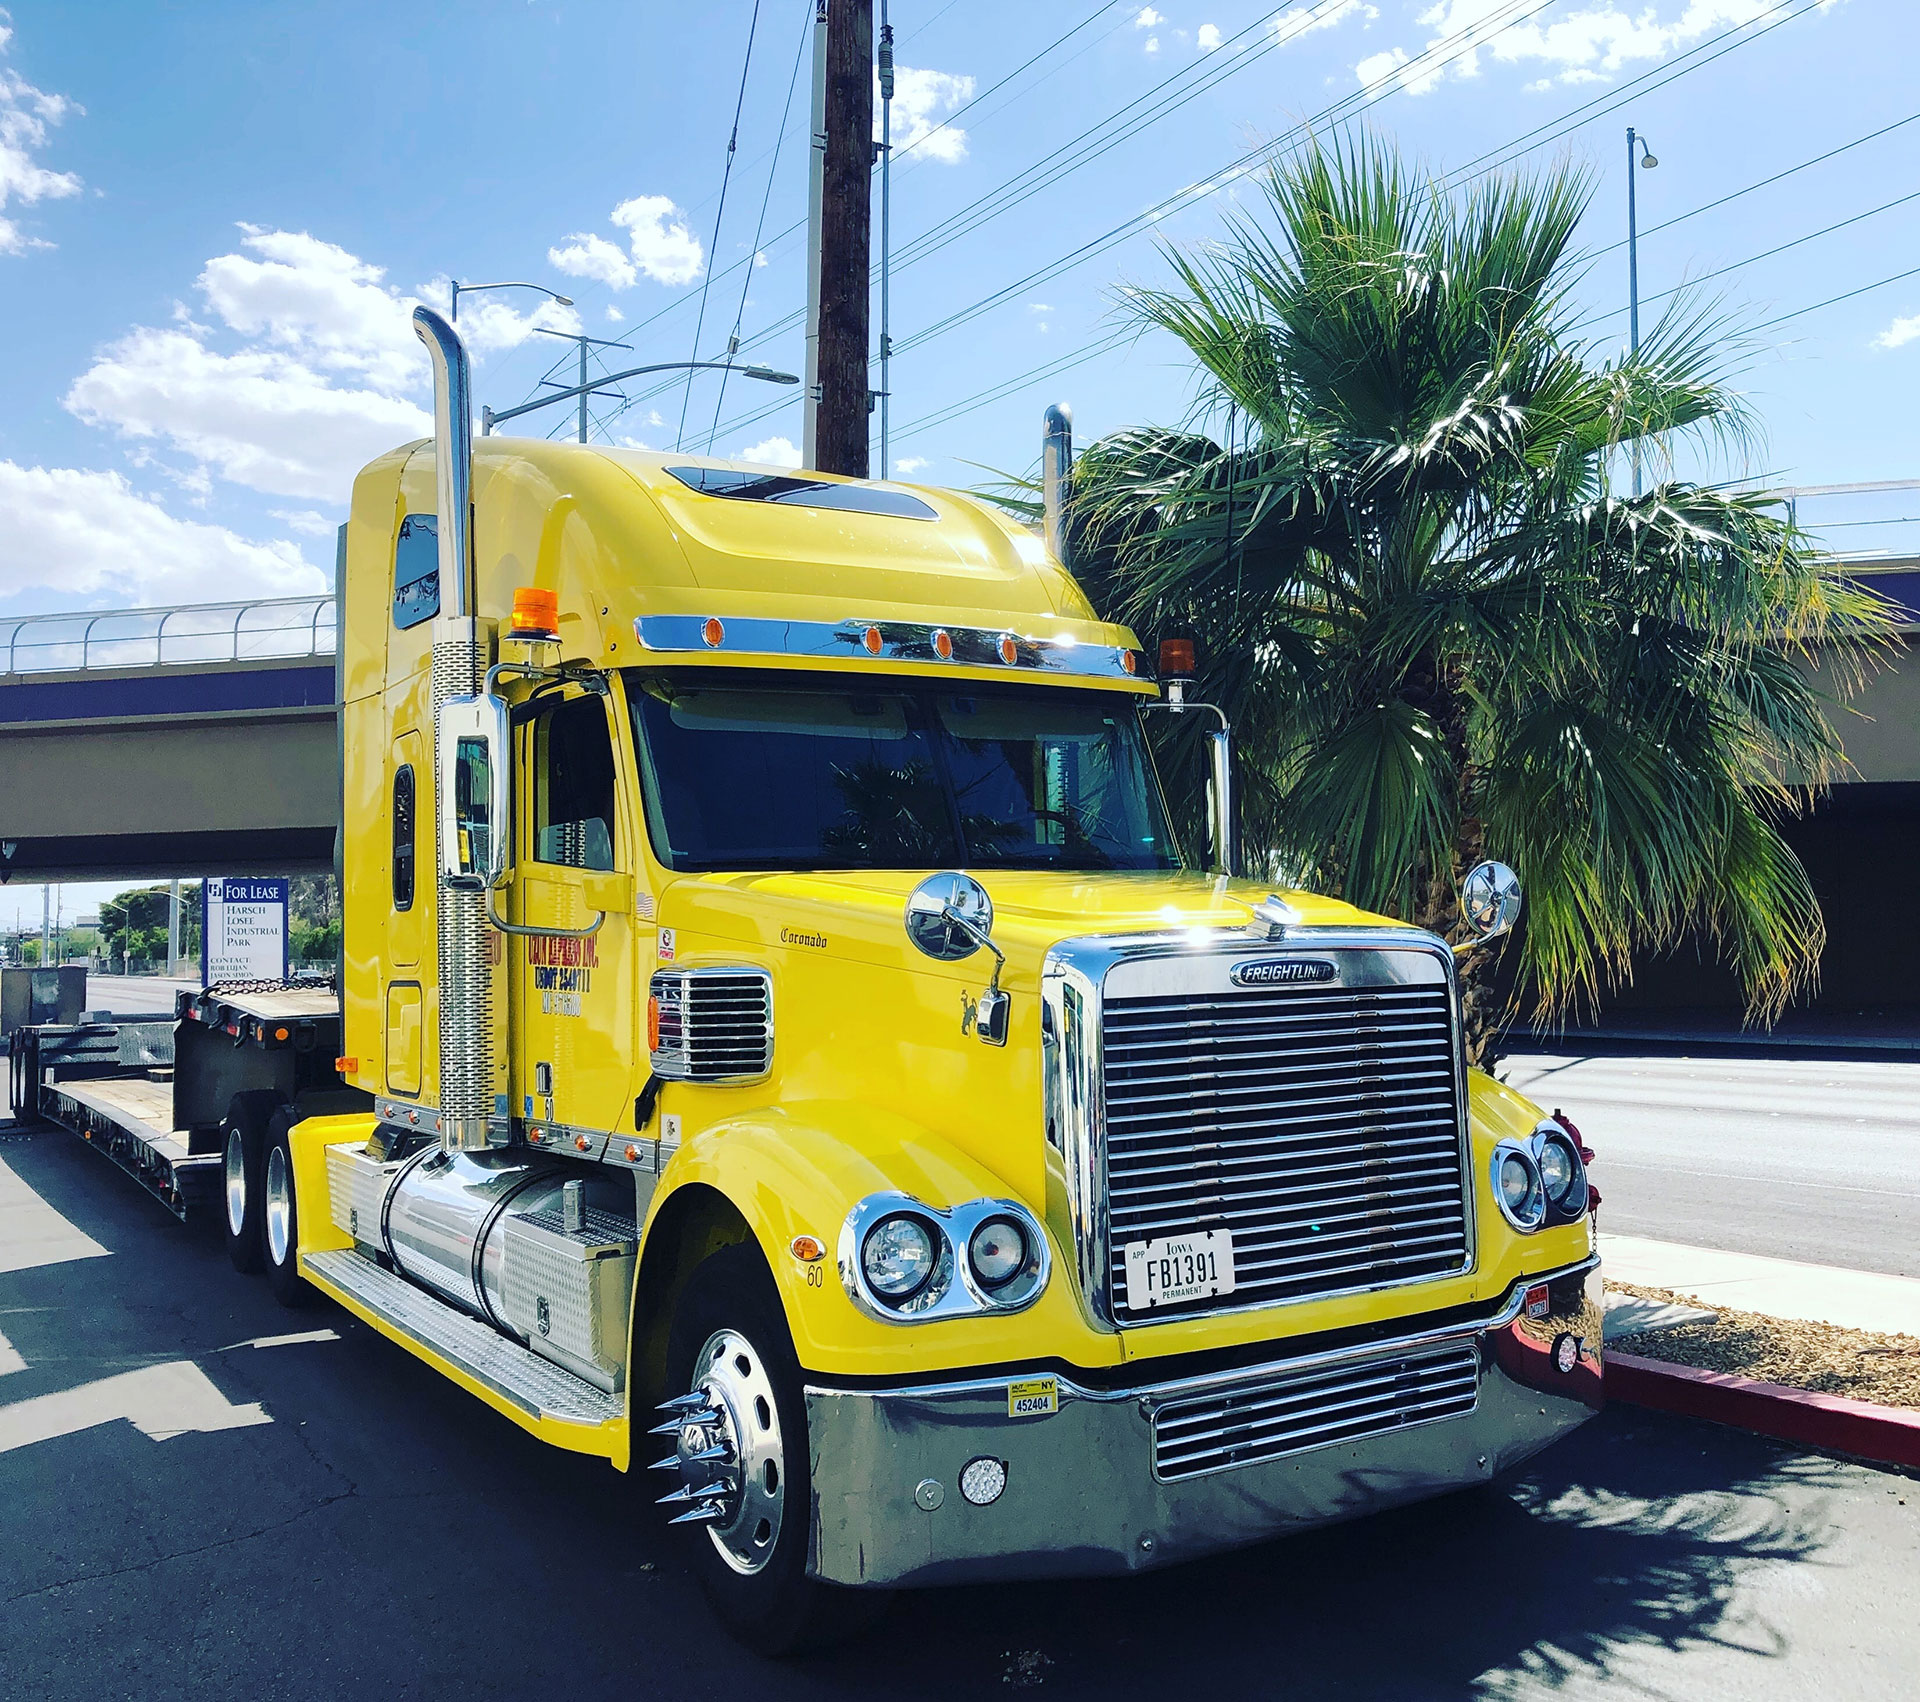 bright yellow semi-truck cab driving on road